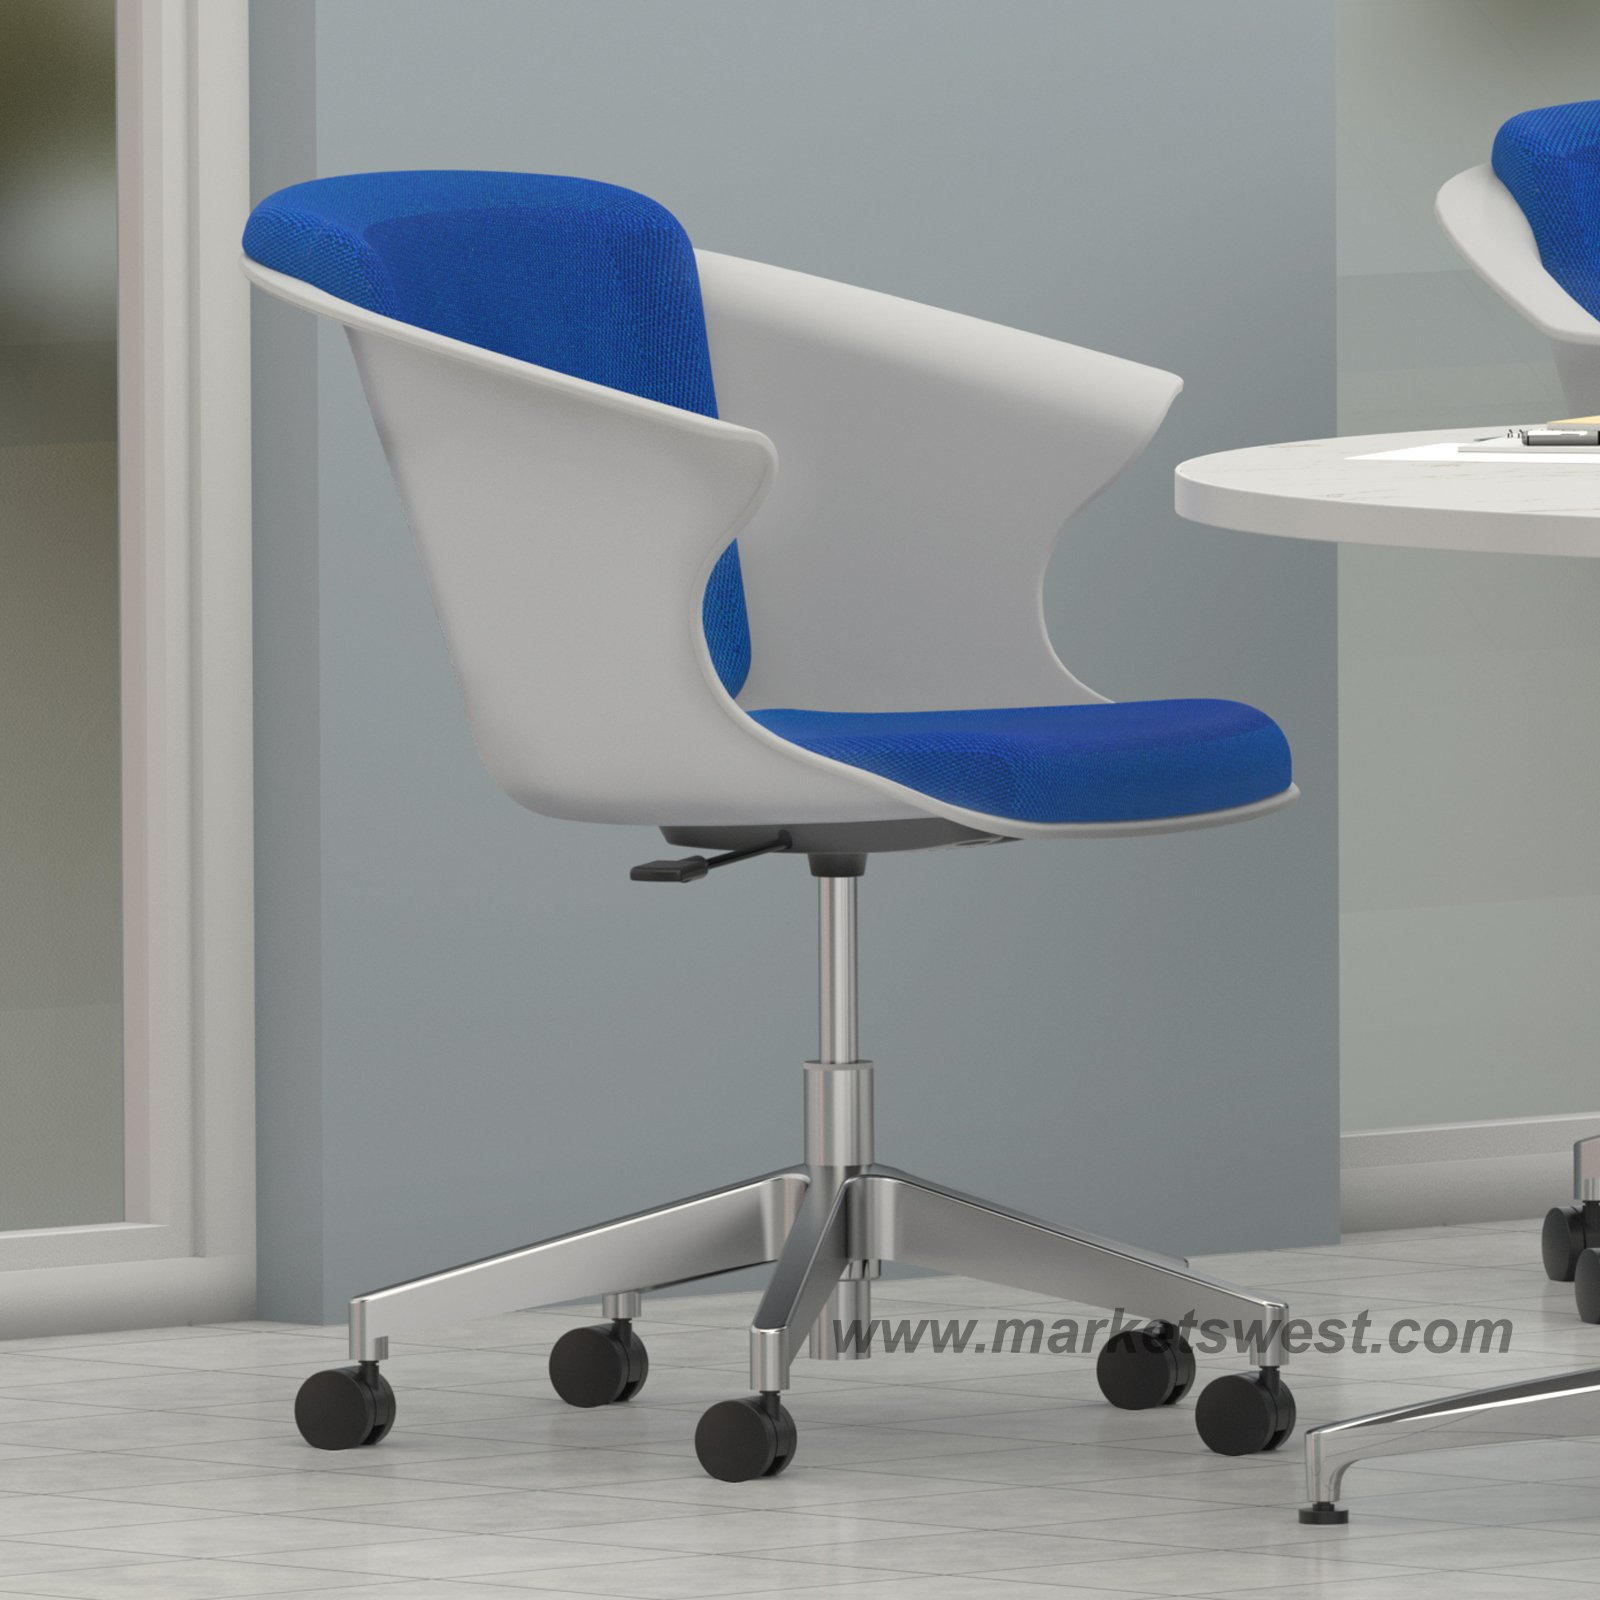 Height Adjustable Chair Cosy Social Chair With 5 Star Height Adjustable Base